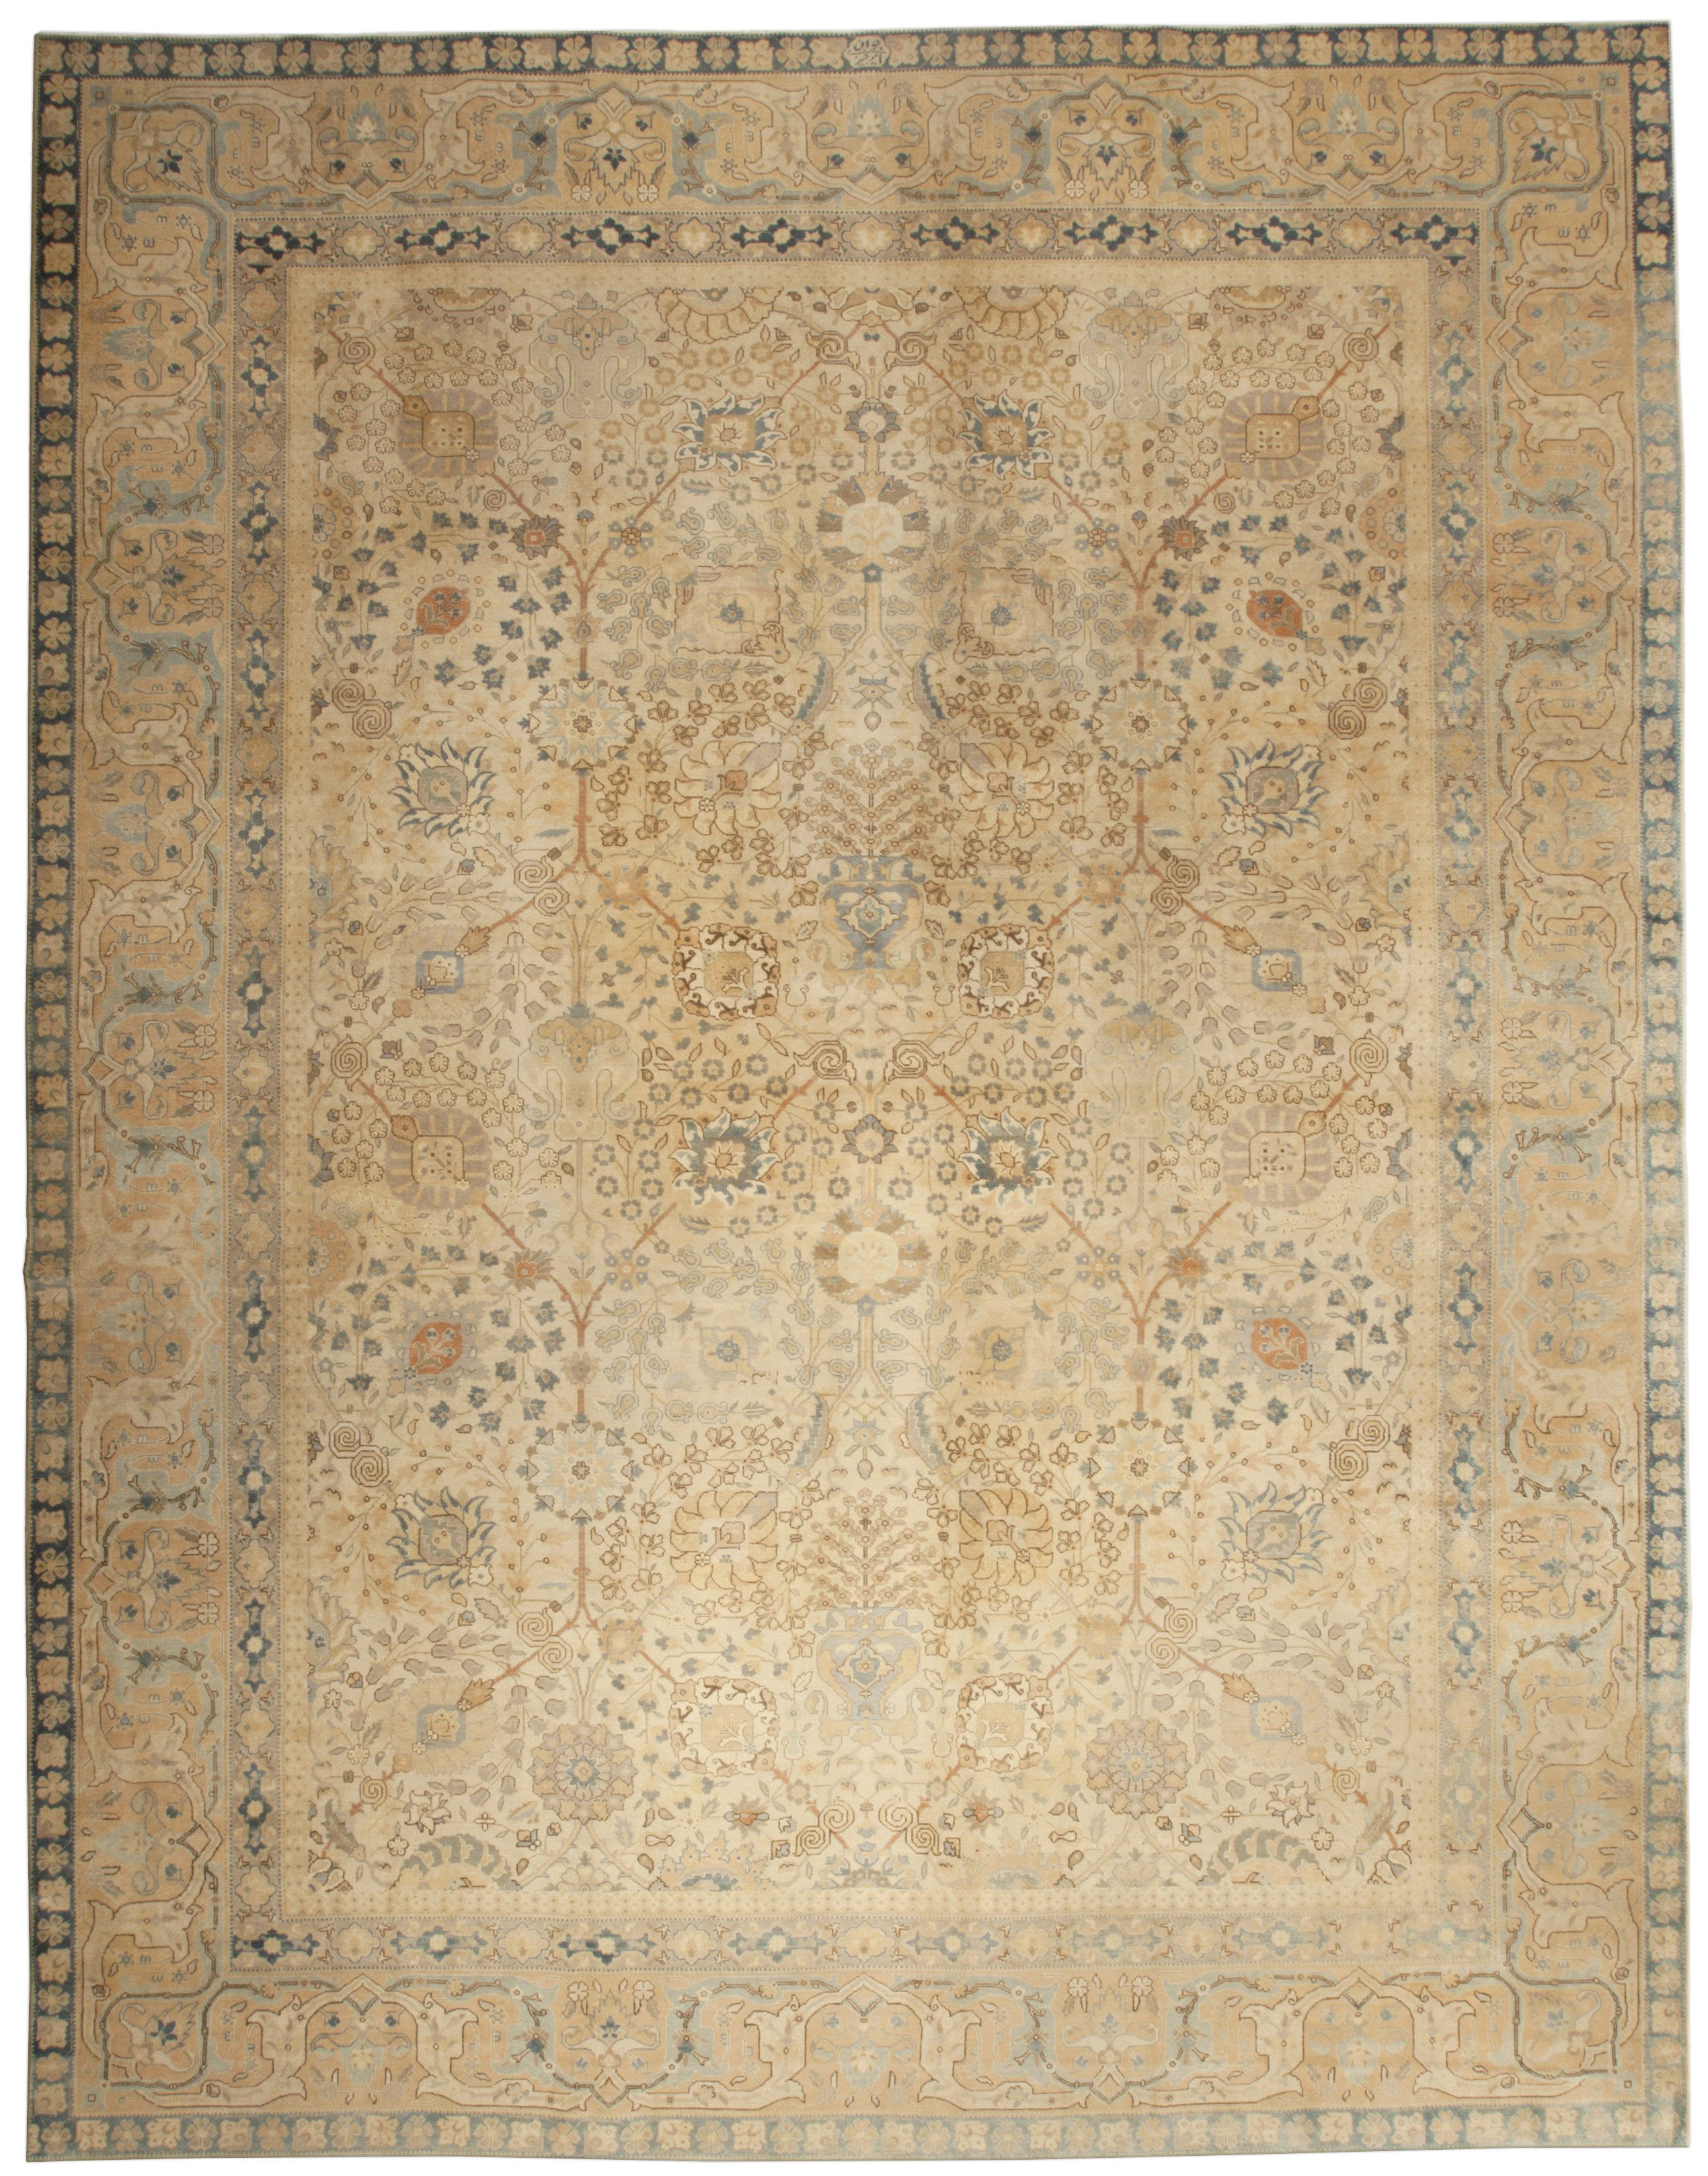 A Persian Tabriz Rug BB4938 - by Doris Leslie Blau.  An finely woven Antique Persian Tabriz Rug that has gently faded with time creating a soft palette of blues and corals with ...